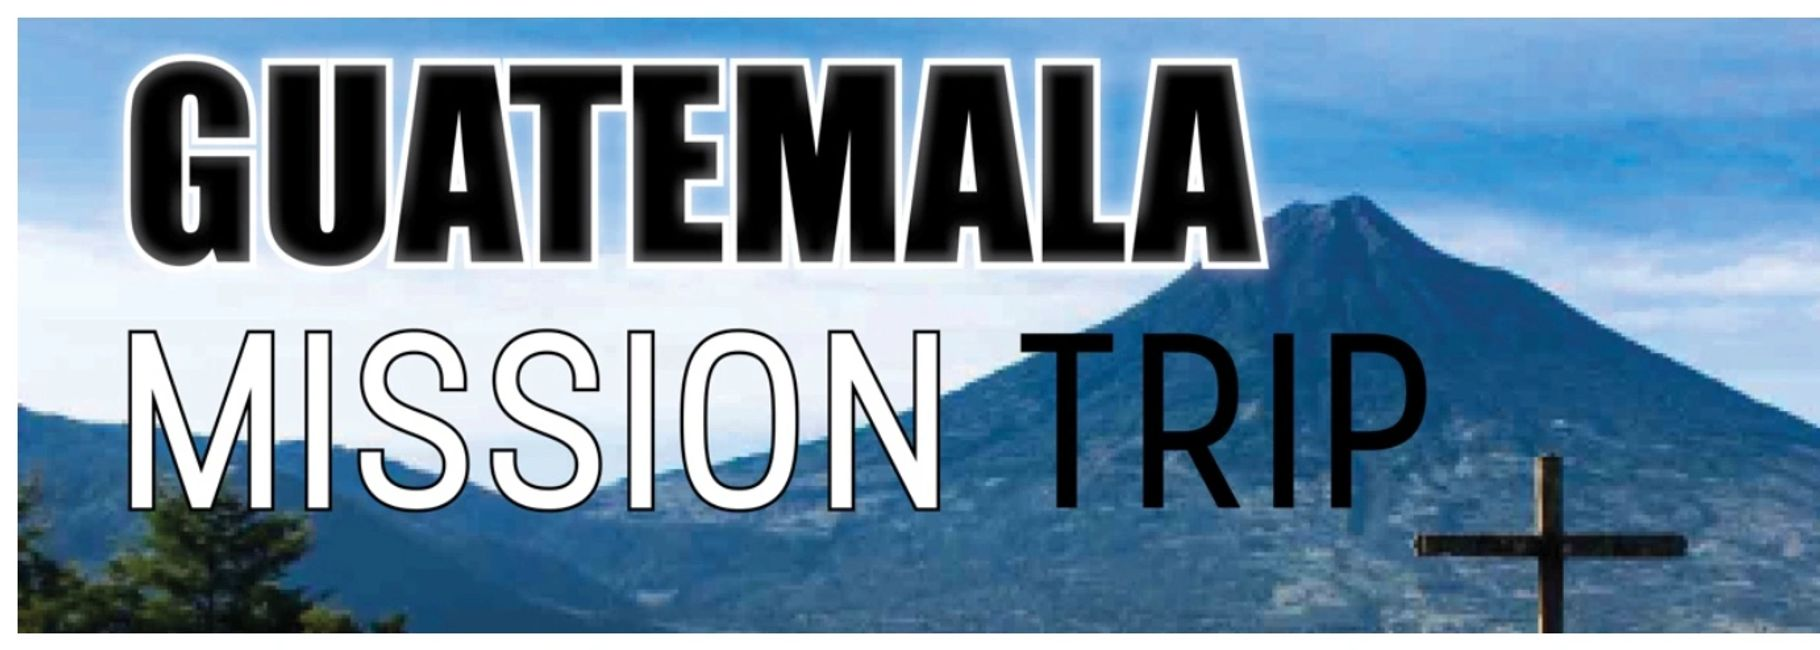 2019 Feed-A-Face is taking a mission trip to Guatemala. We are searching for individuals who would